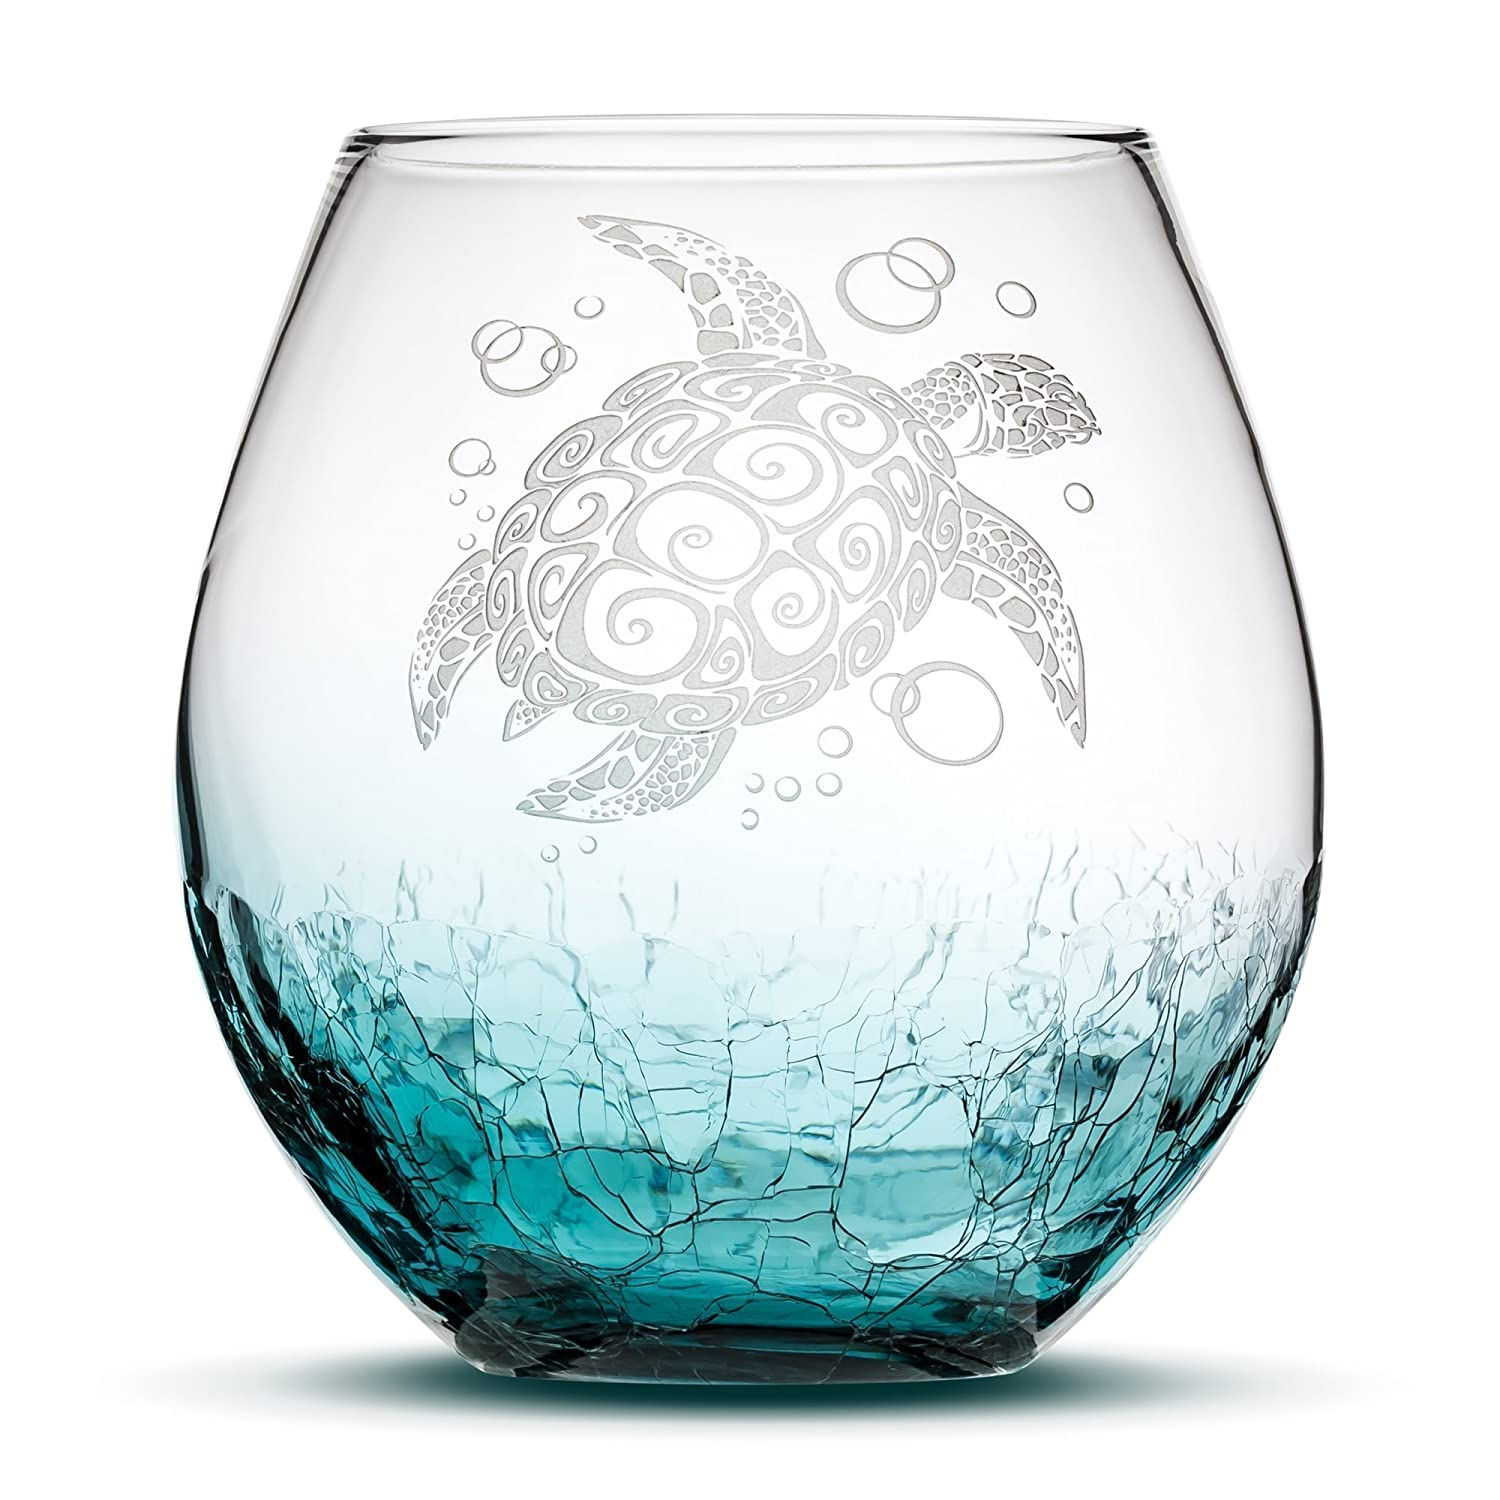 Integrity Bottles Sea Turtle Stemless Wine Glass, Crackle Teal, Handblown, Tribal Design, Hand Etched Gifts, Sand Carved